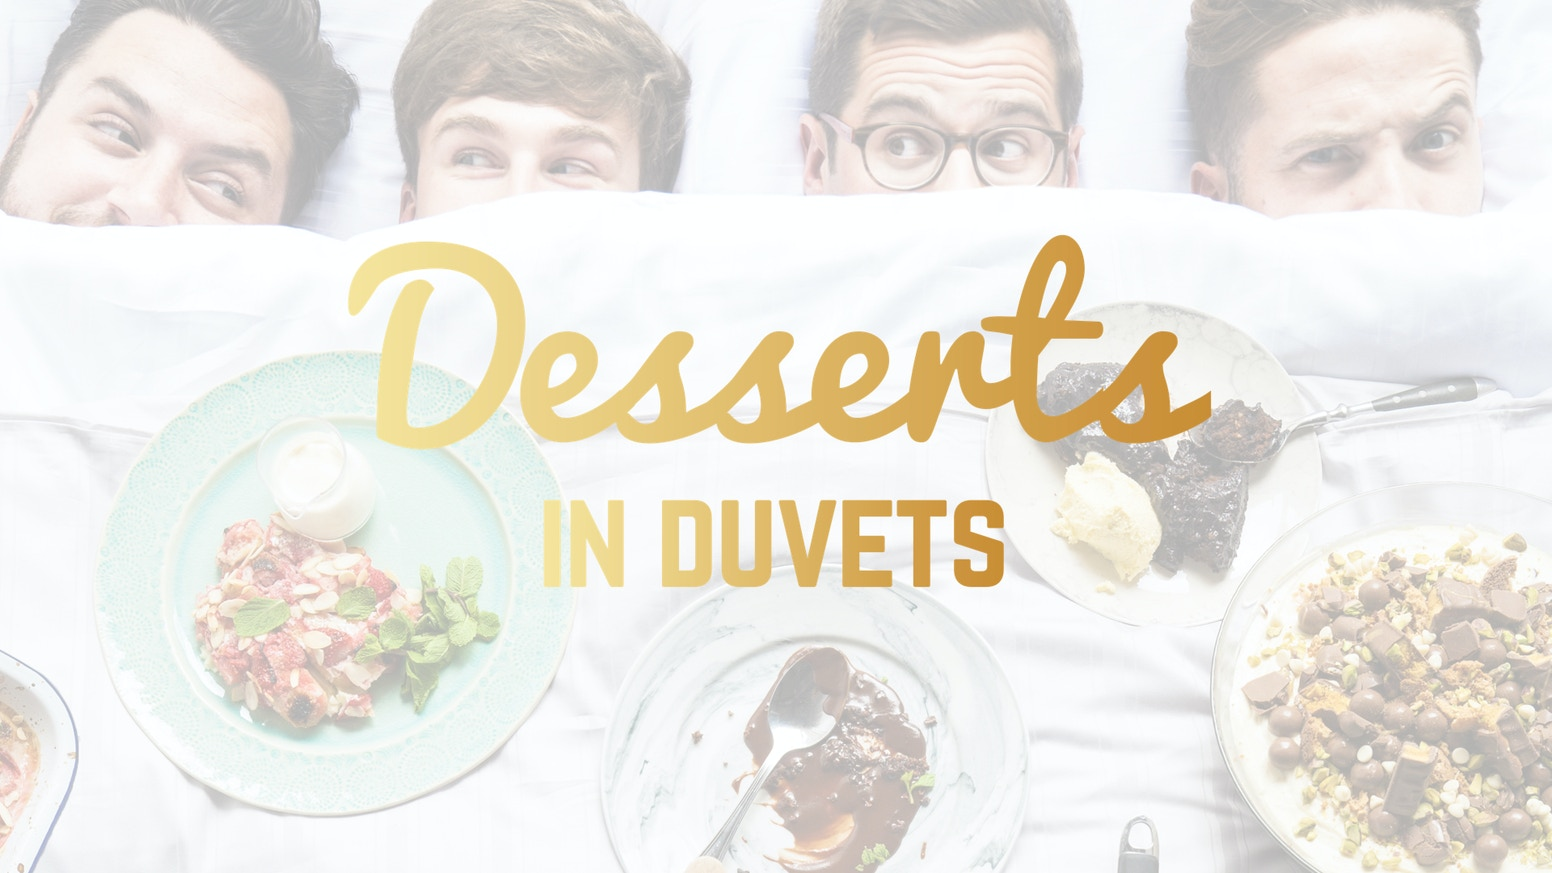 Desserts in duvets cookbook by sortedfood kickstarter a collection of the most delicious indulgent desserts to enjoy whilst snuggled up in a duvet we need you to bring it to life created by sortedfood forumfinder Choice Image